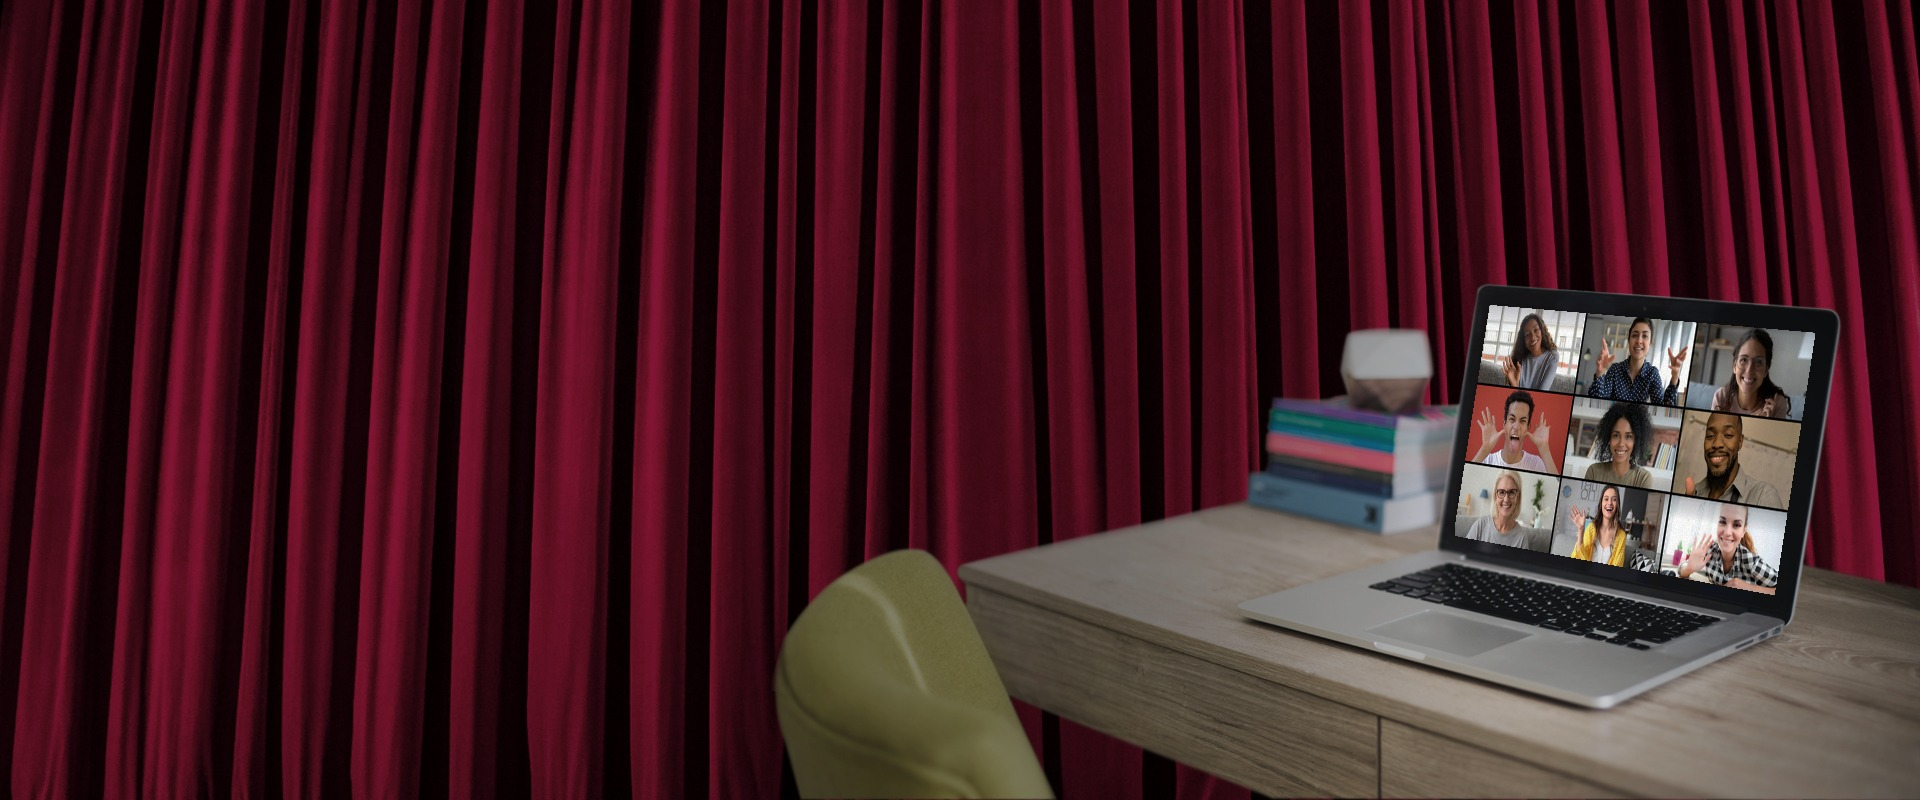 Red theater curtains, a green chair , a desk and a laptop with nine people on screen